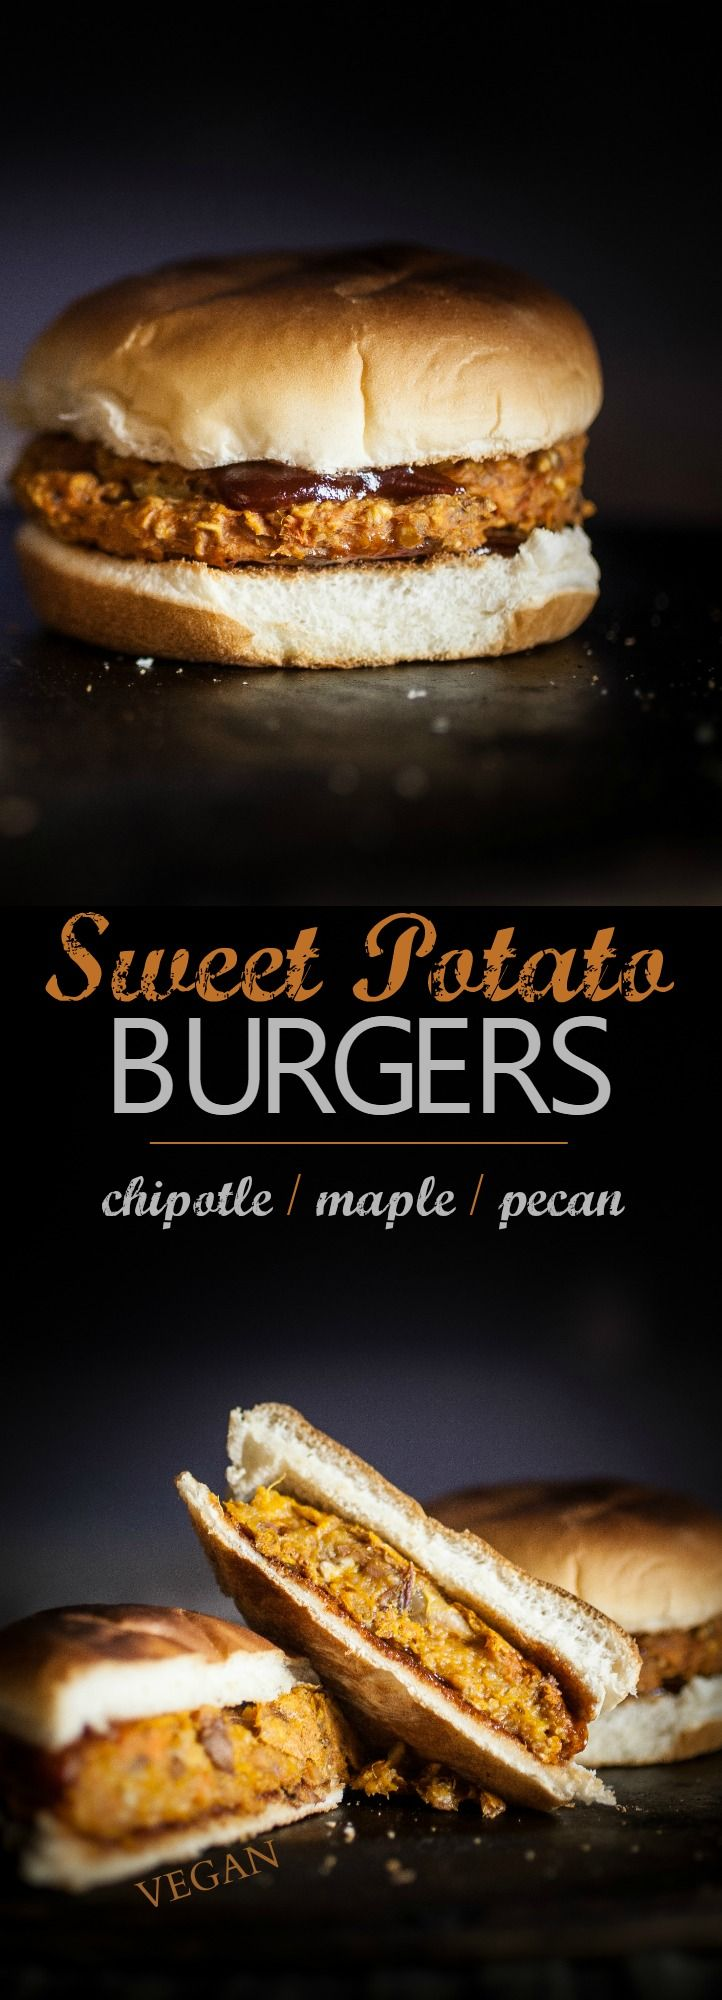 Produce On Parade - Chipotle Maple Sweet Potato Burgers - These perfectly textured vegan, sweet potato burgers have a hint of maple sweetness and a smoky chipotle kick.